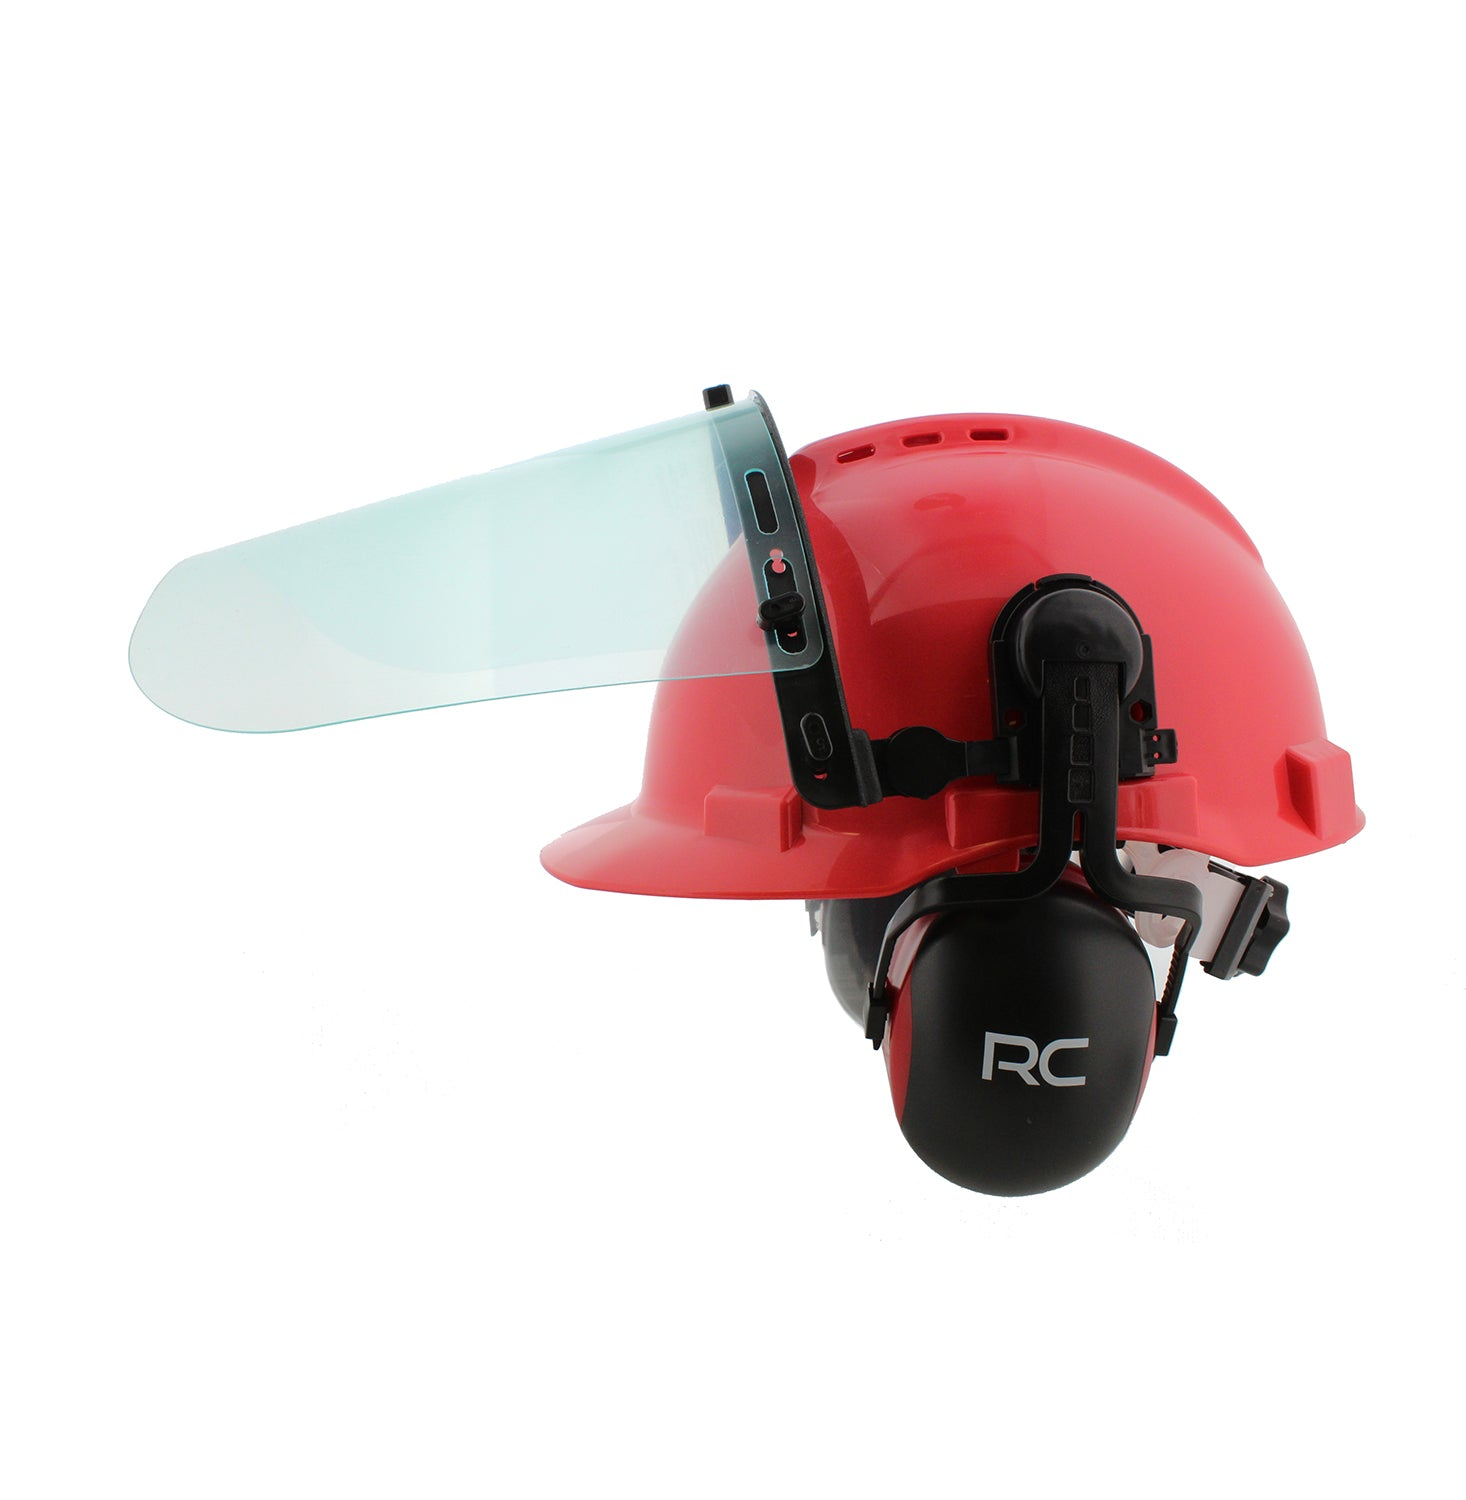 Forestry Safety Helmet � Vented Hard Hat with Visors and Earmuffs